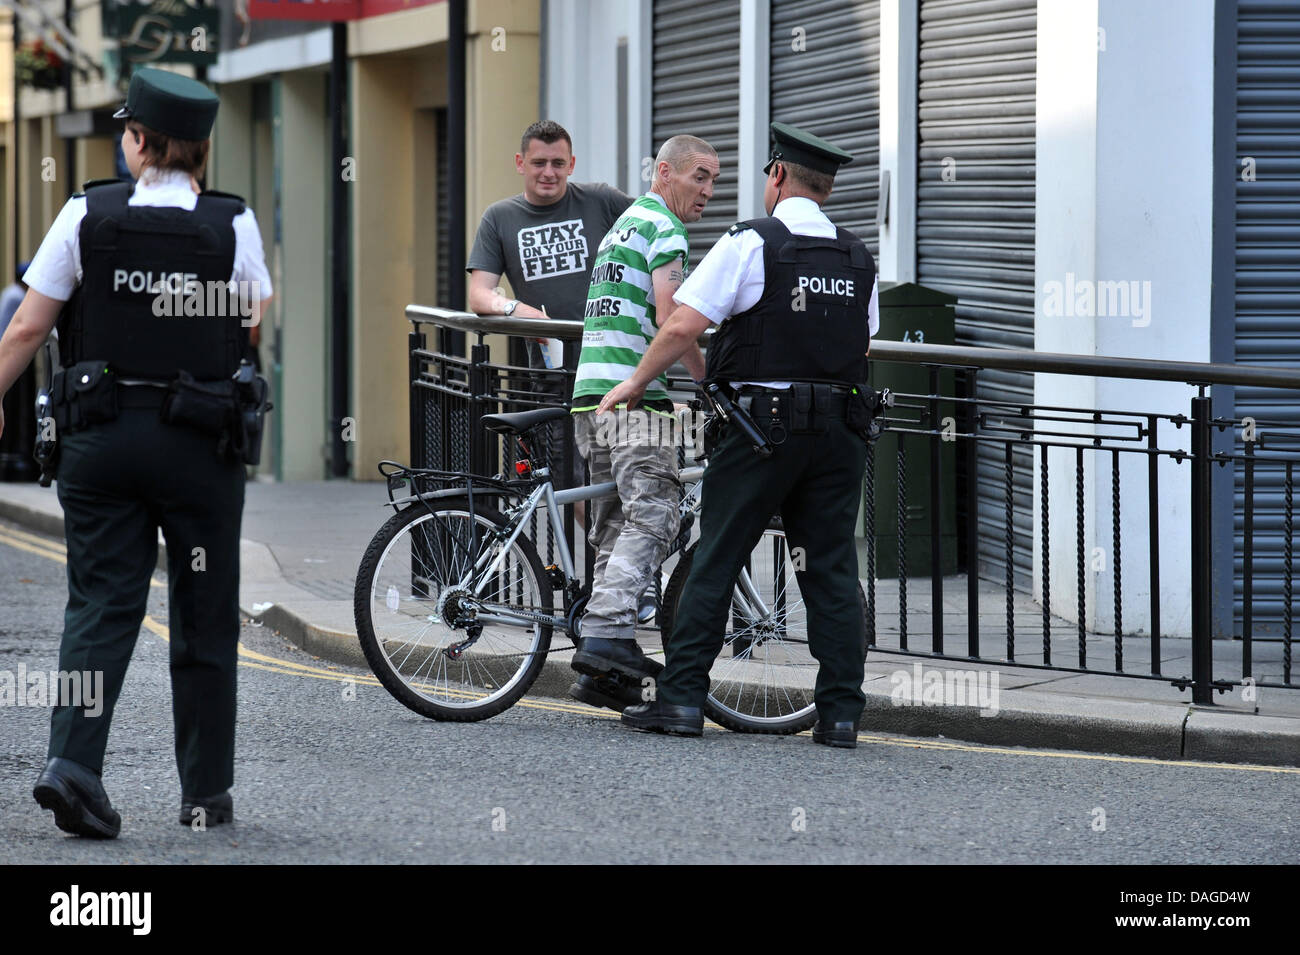 Londonderry, Northern Ireland, UK. 12th July 2013. PSNI officers stop a nationalist close to where  local  members - Stock Image